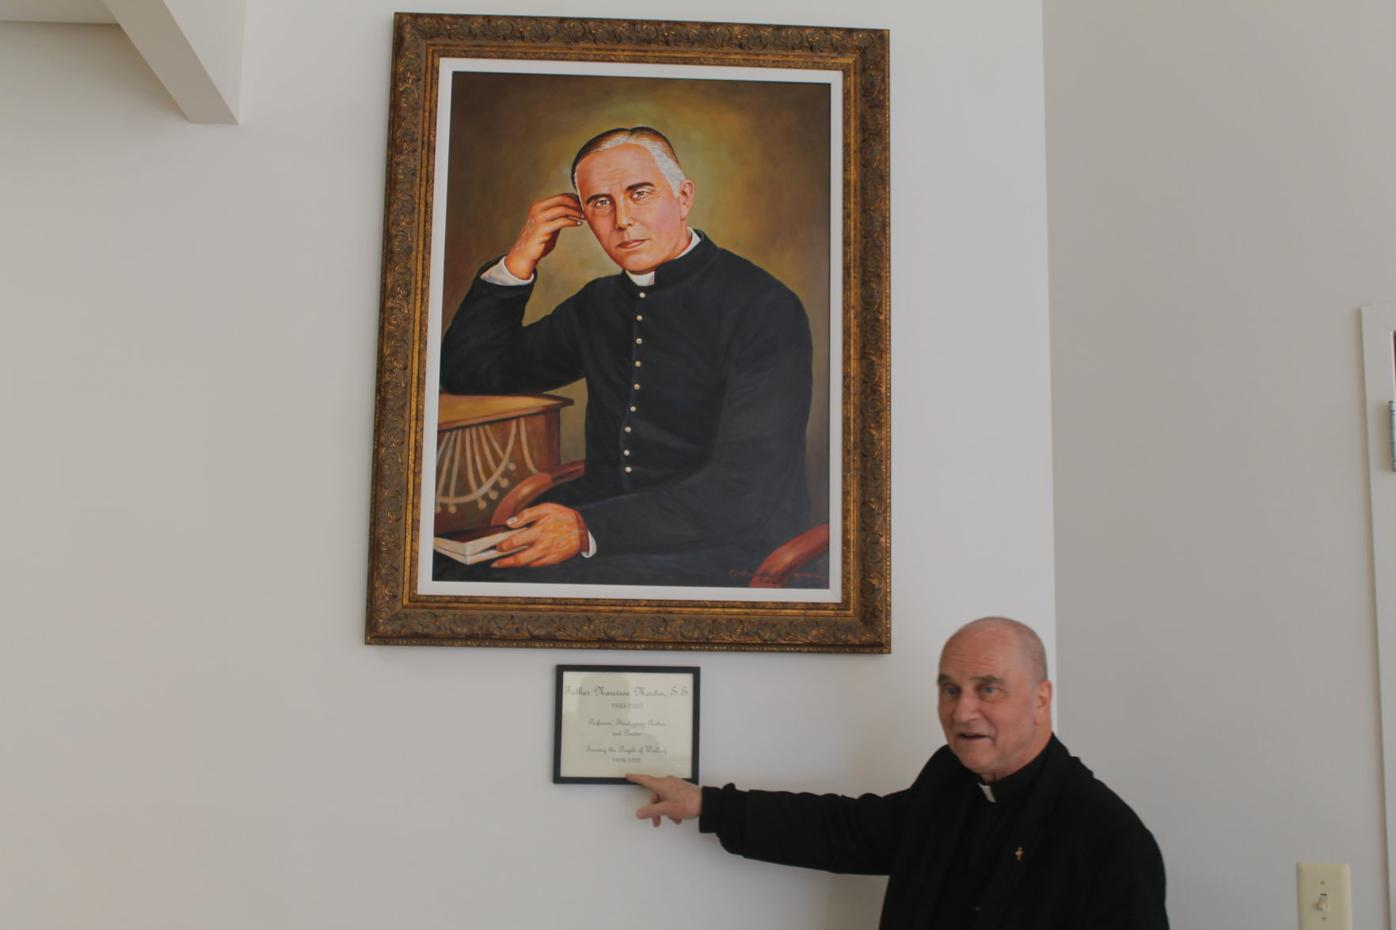 Keeping alive the legacy of Father Martin